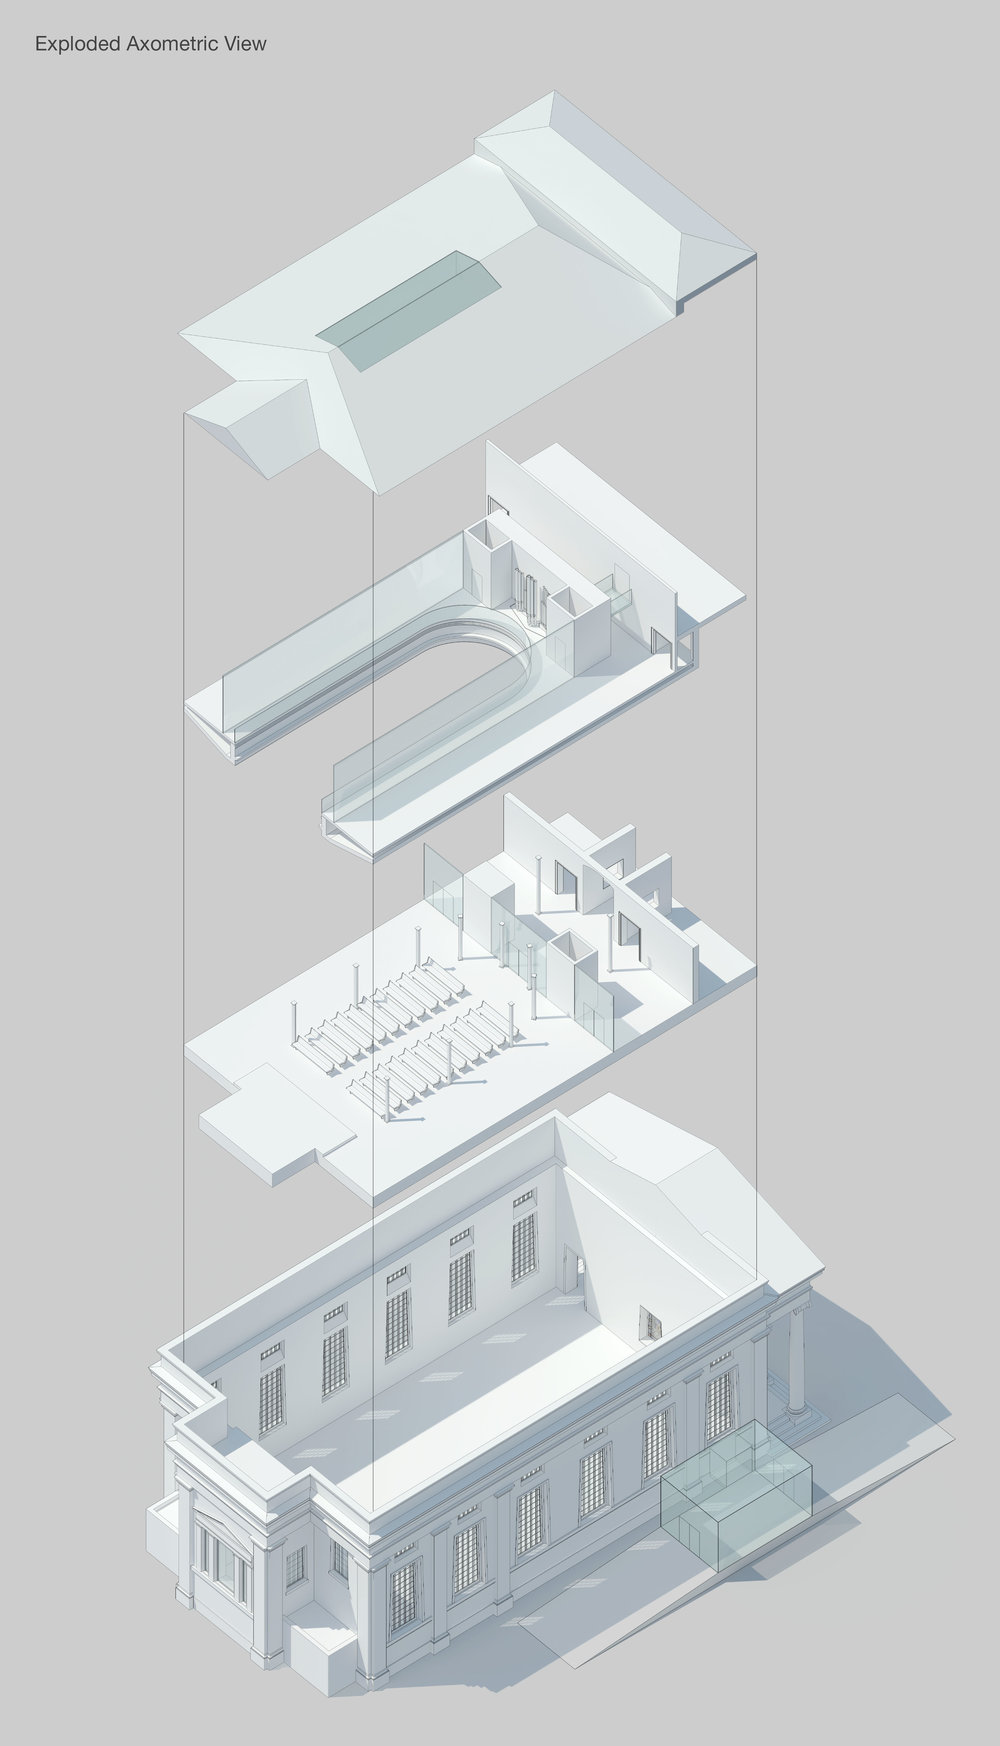 St Brides Liverpool Georgian Quarter Exploded Axometric